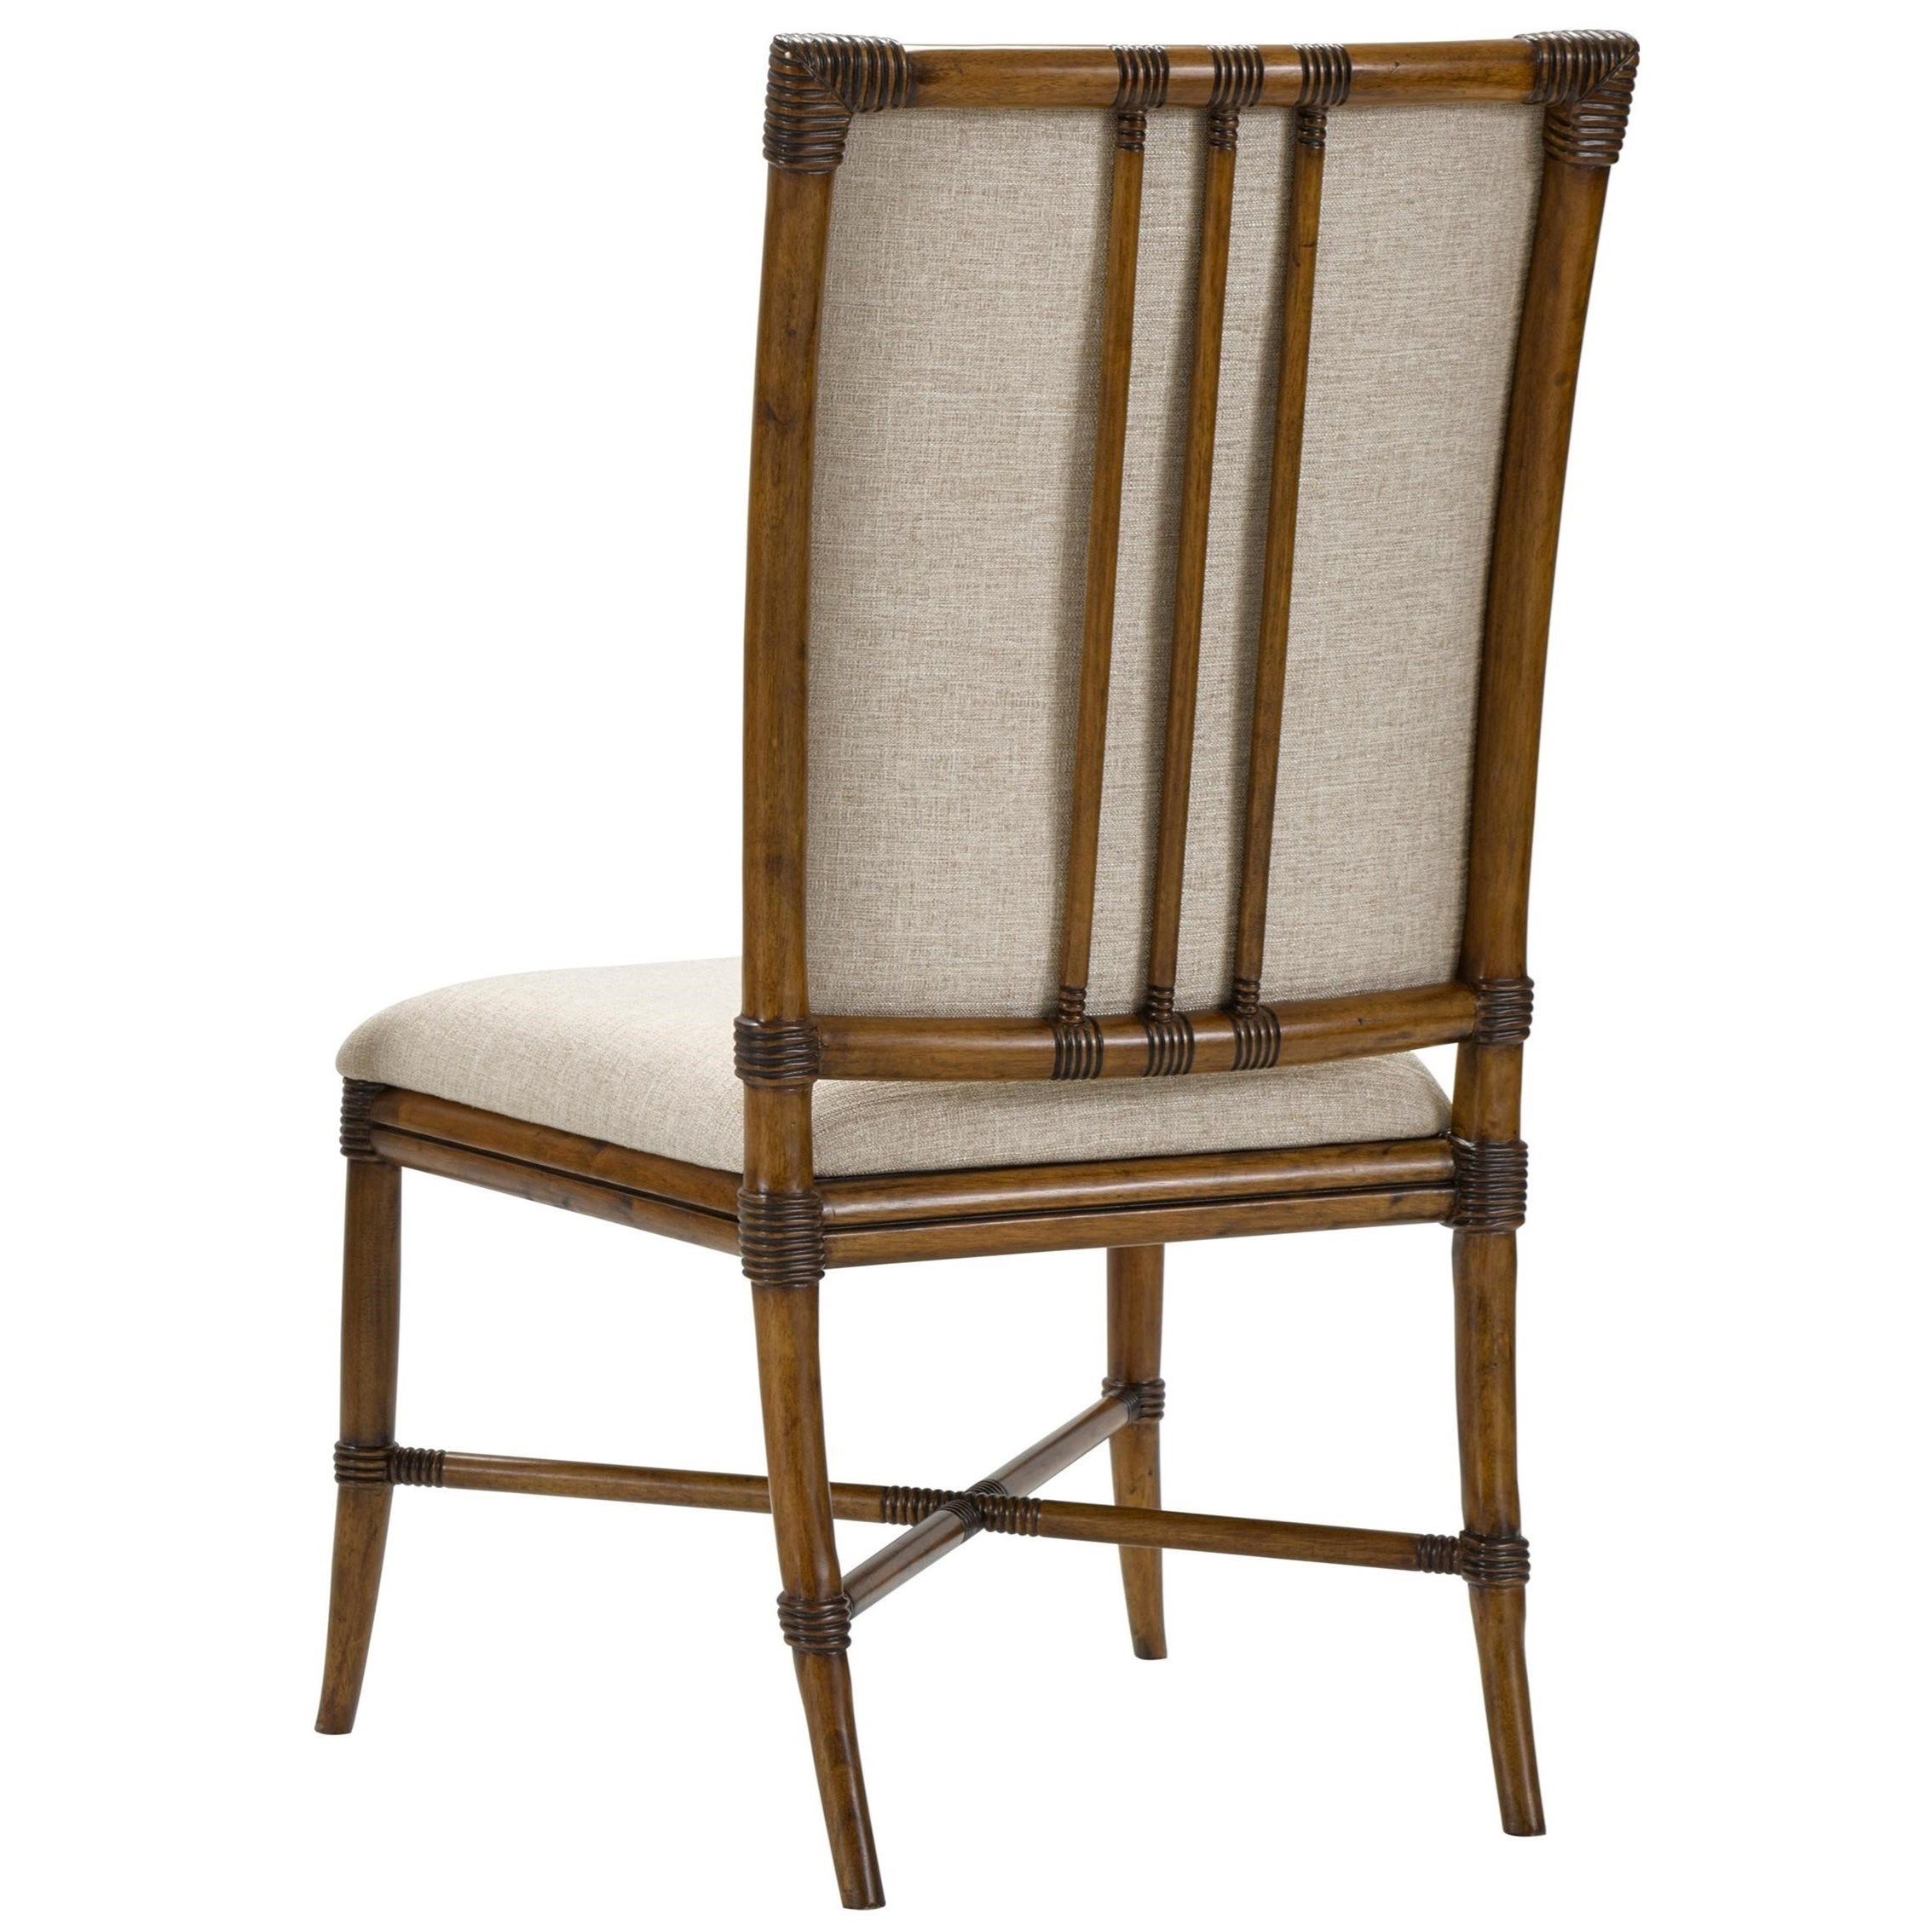 Broyhill Furniture Amalie Bay Bamboo Side Chair - Item Number: 4548-585